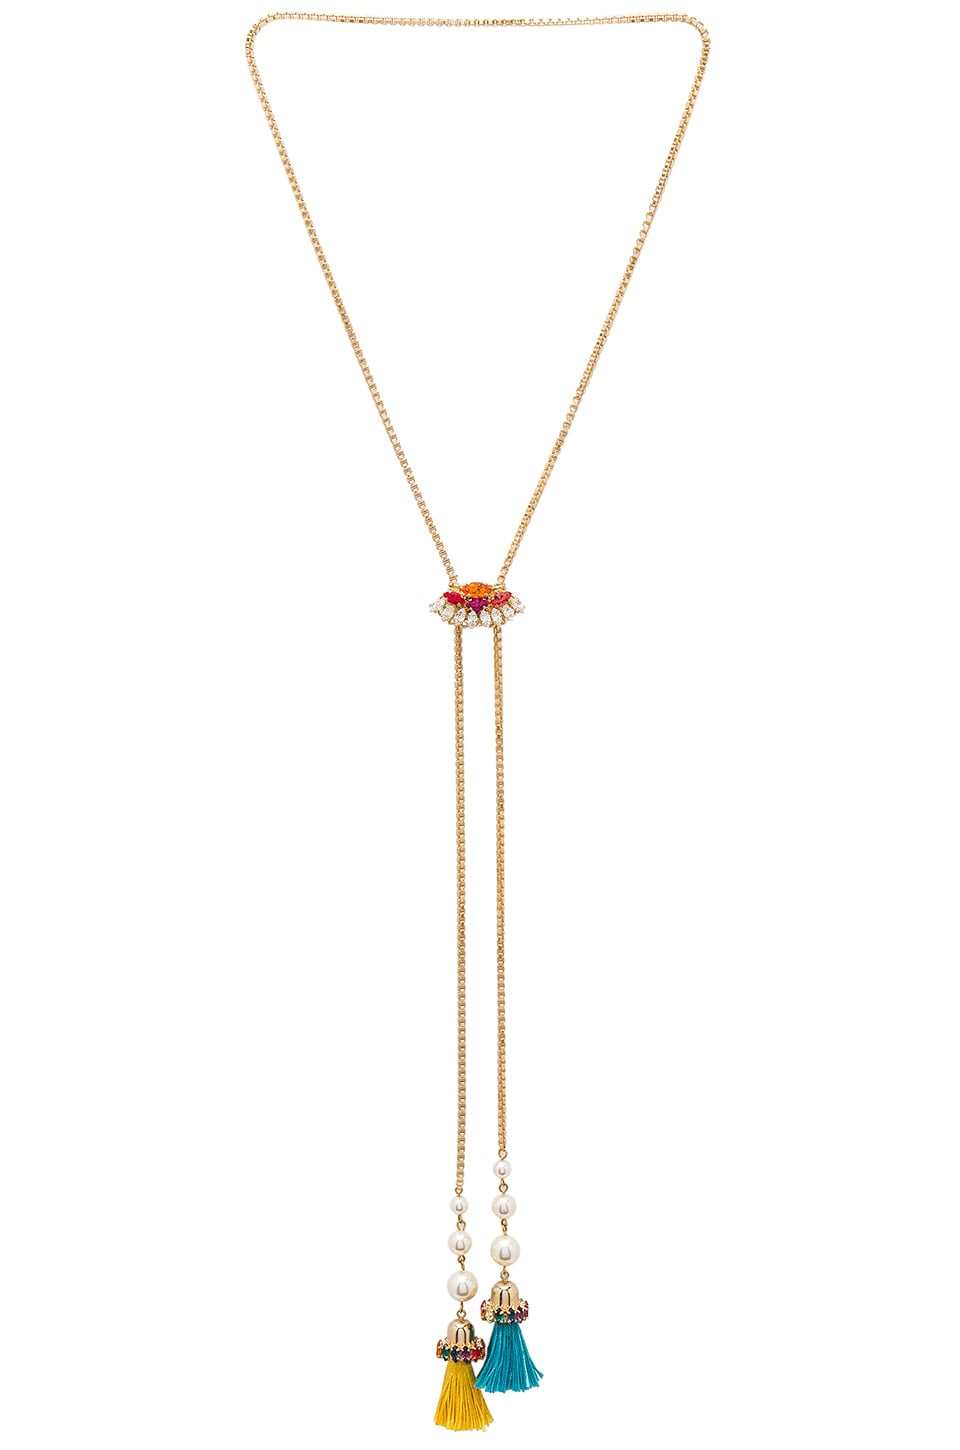 Crystal Cluster & Tassel Bolo Necklace by Anton Heunis